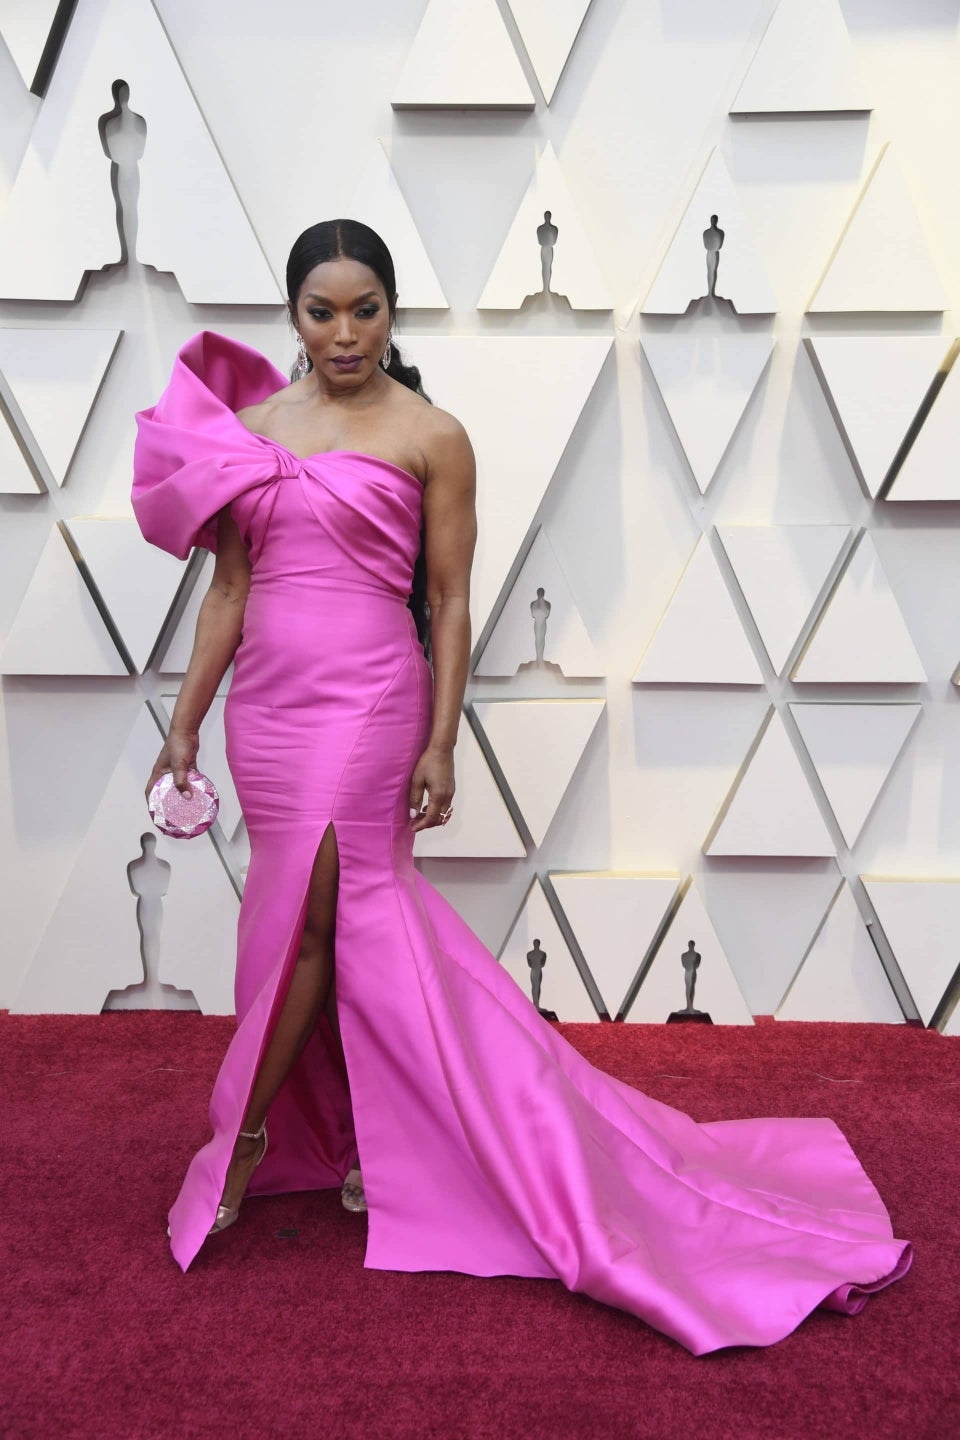 Get The Oscars Look: Angela Bassett's Pink Pout and Radiant Glow Stole the Show. Now It's Your Turn